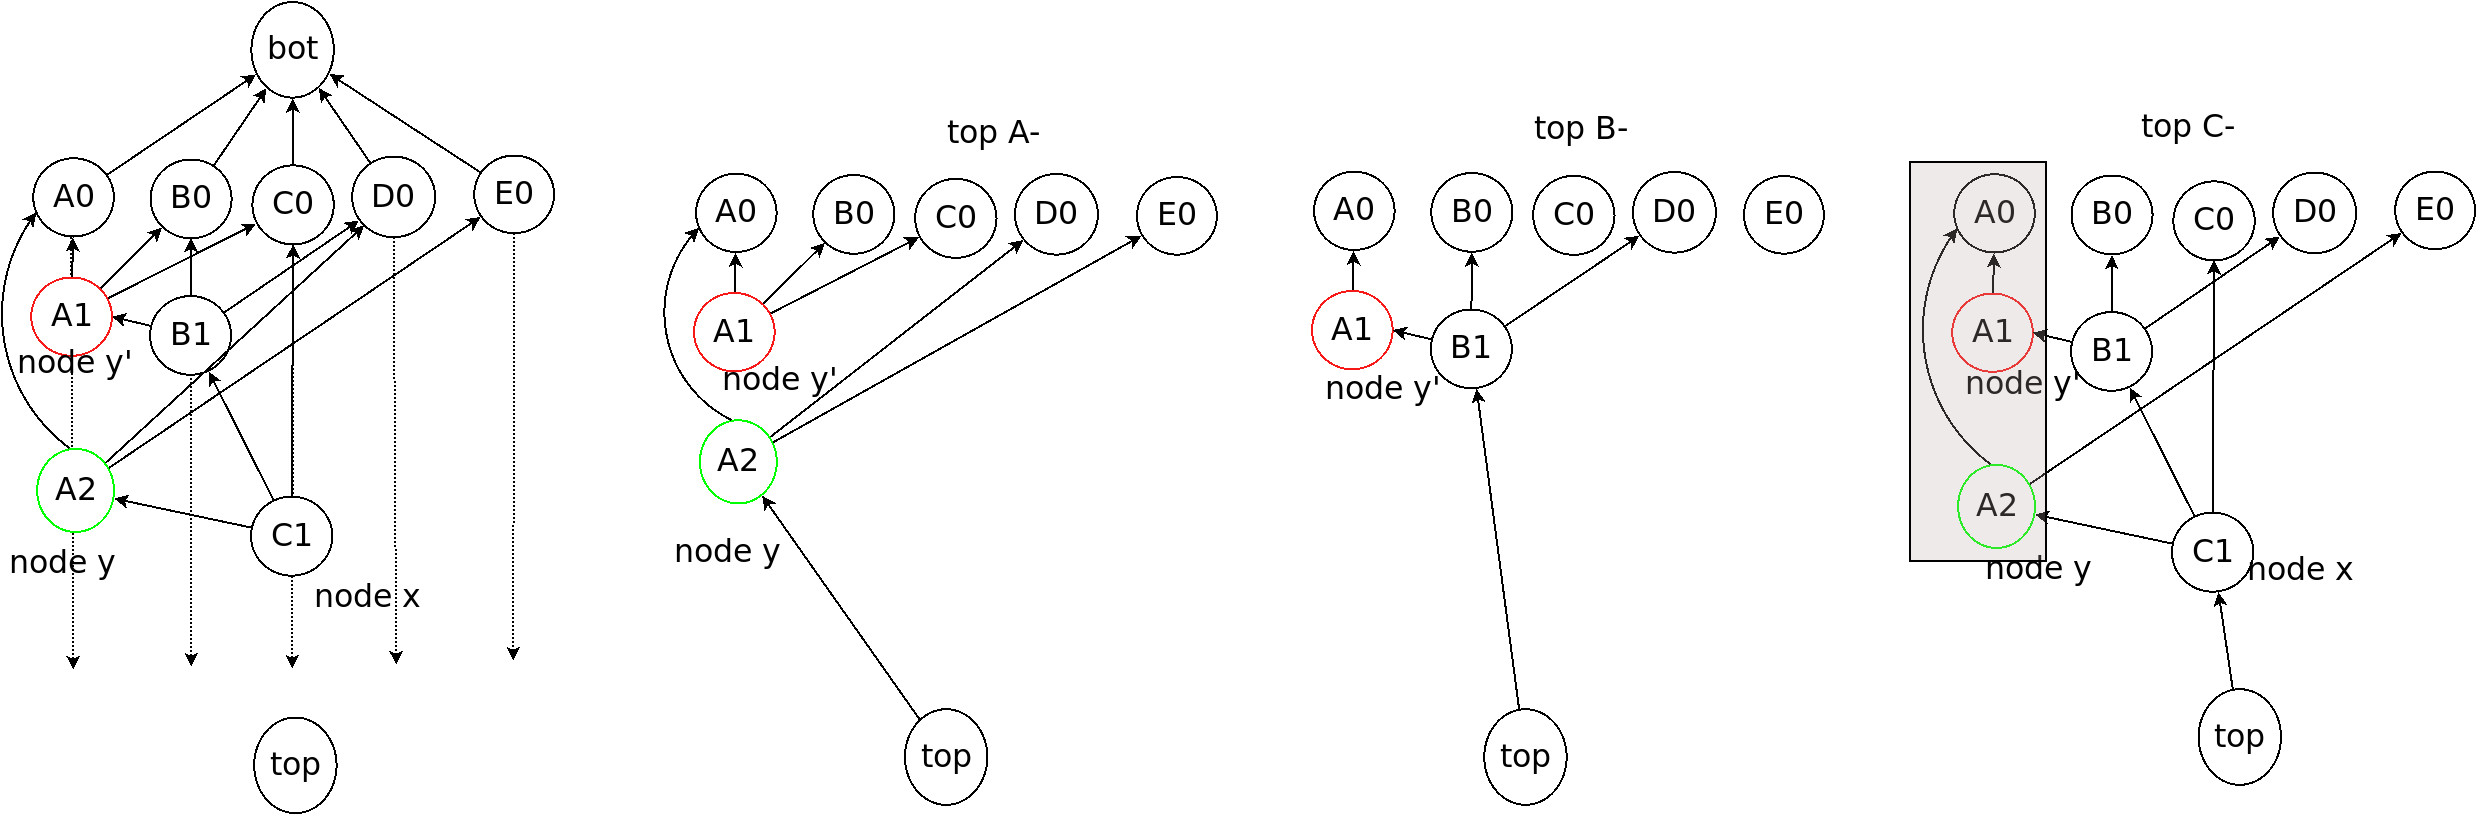 An example of a pair of fork events in an OPERA chain. The fork events are shown in red and green. The OPERA chains from (a) to (d) are different by adding one single event at a time.